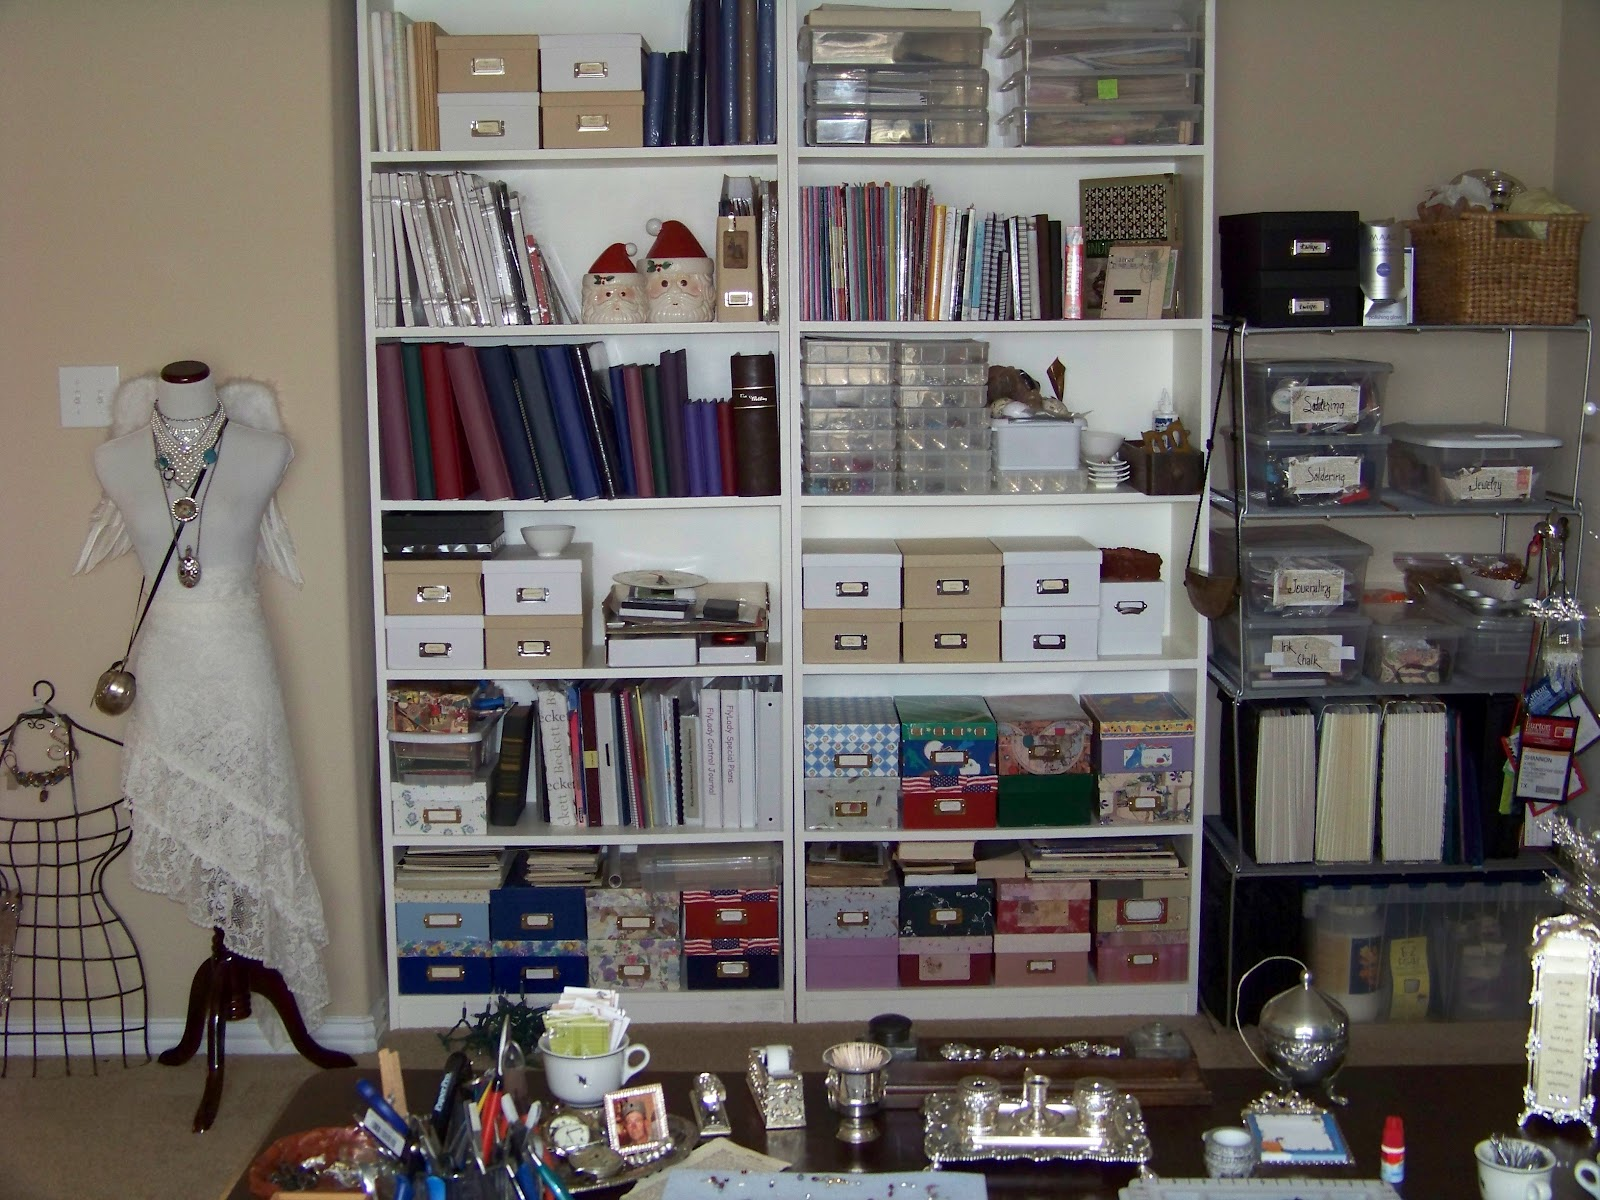 This is the storage I have in this space. My studio in KS had a full